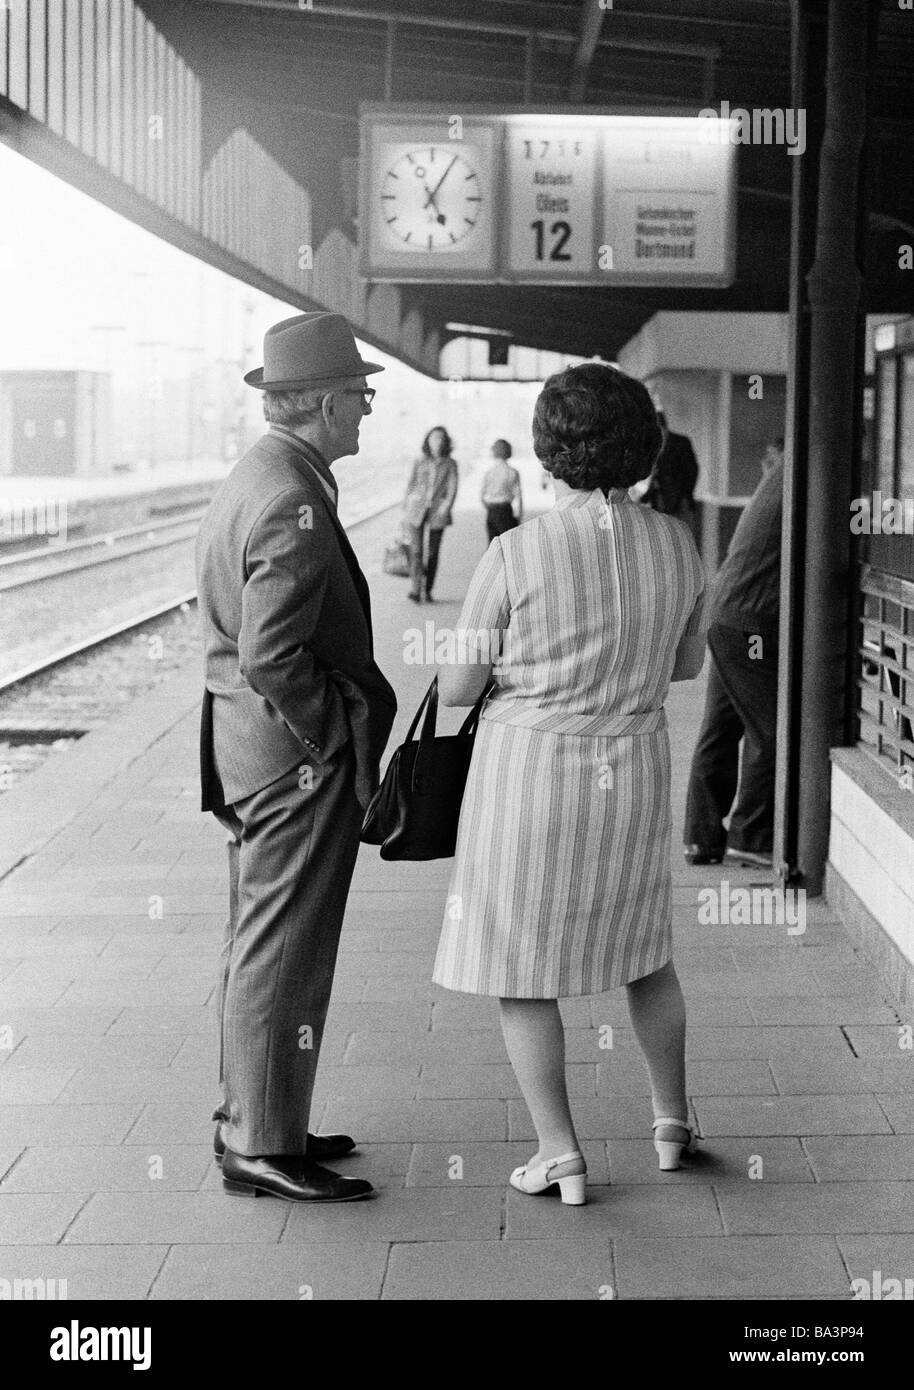 Seventies, black and white photo, people, older couple stands on a platform waiting for the train, railroad station, - Stock Image